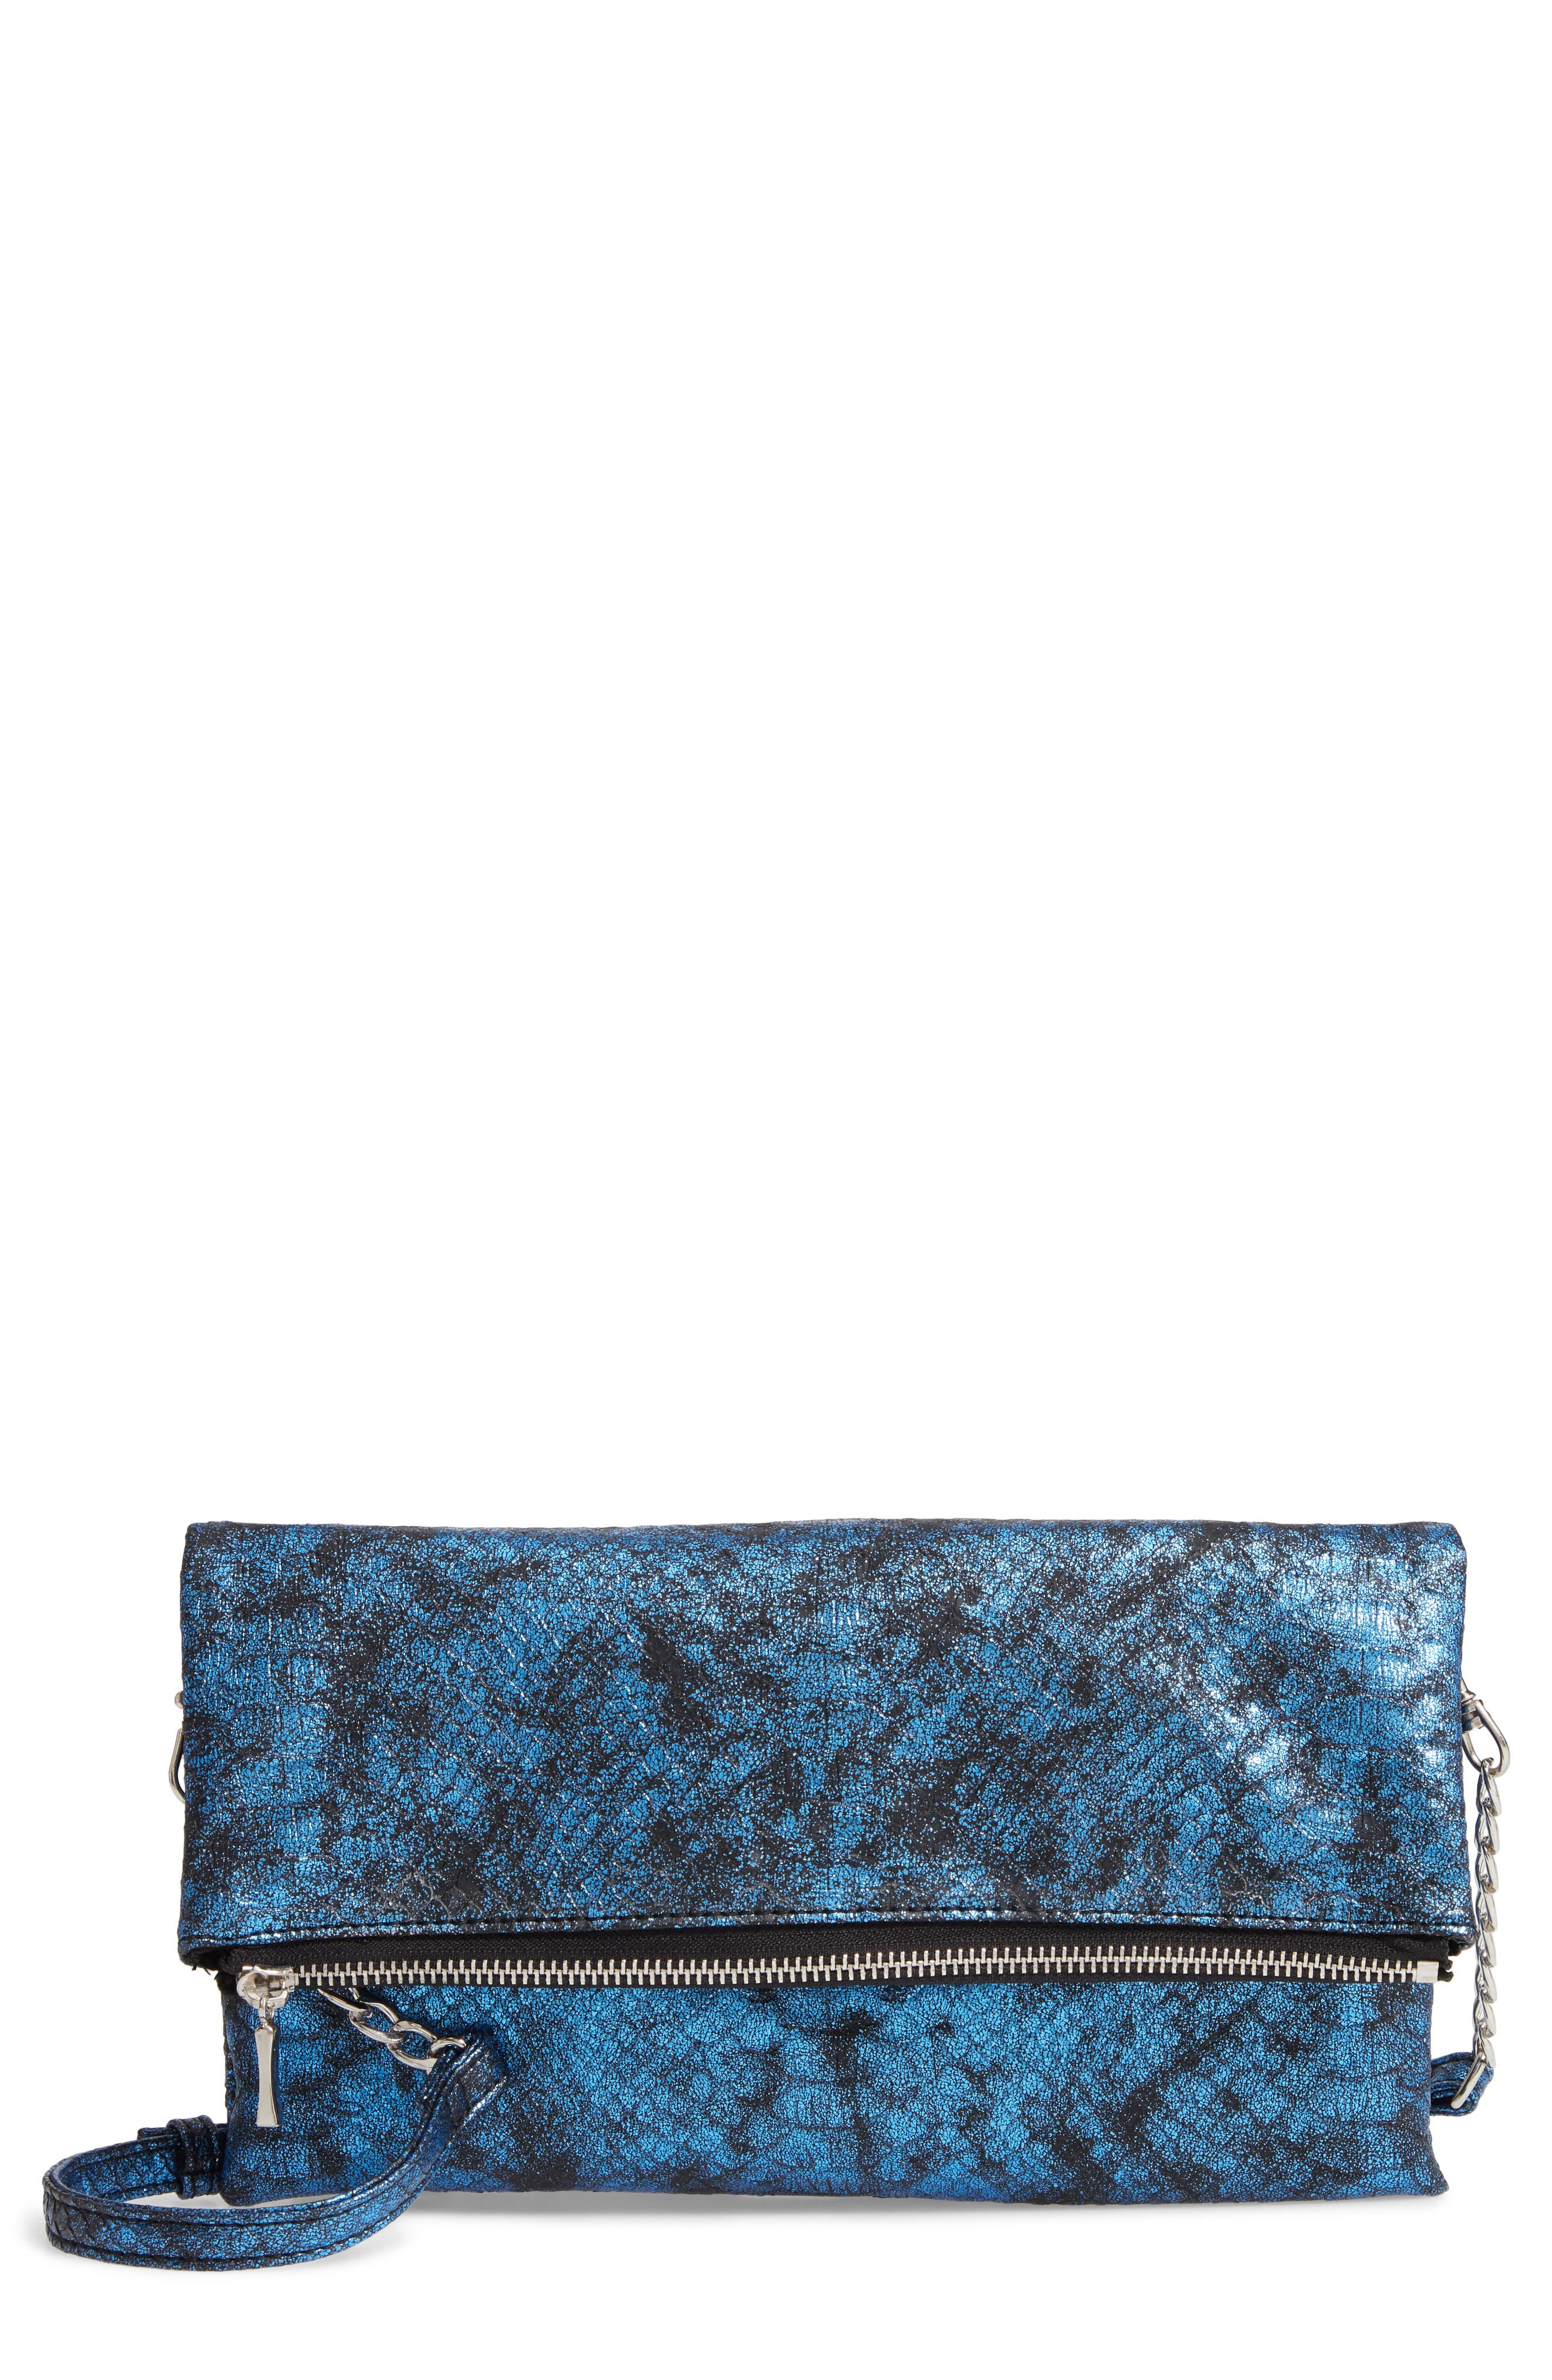 Snake Embossed Faux Leather Clutch,                             Main thumbnail 1, color,                             NAVY